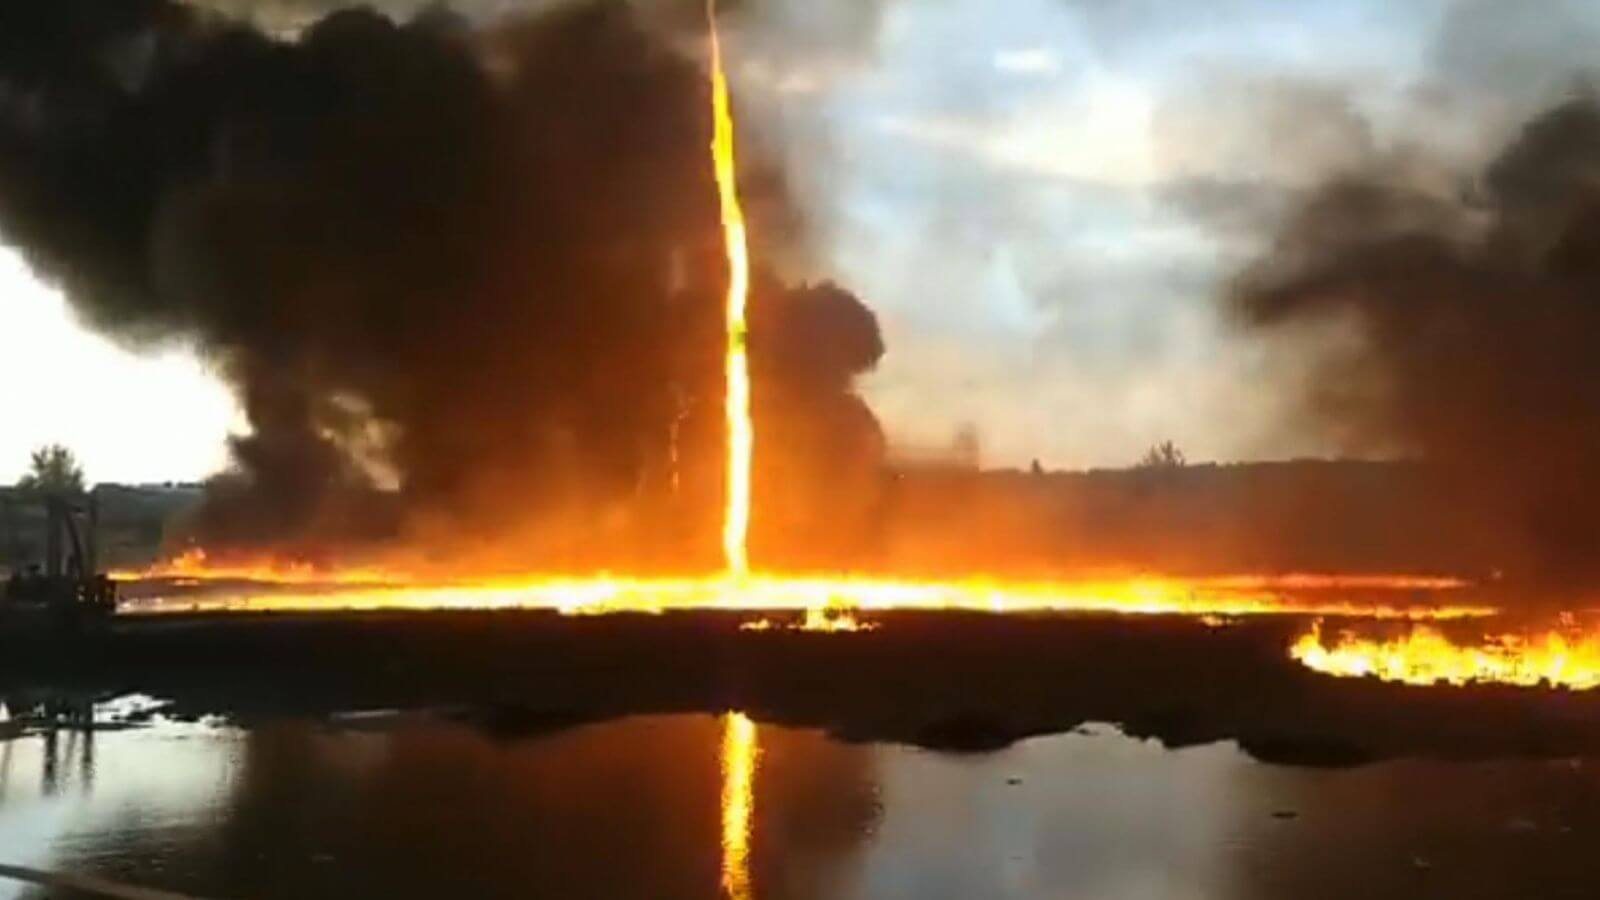 Firenado bei Leicestershire, https://news.sky.com/